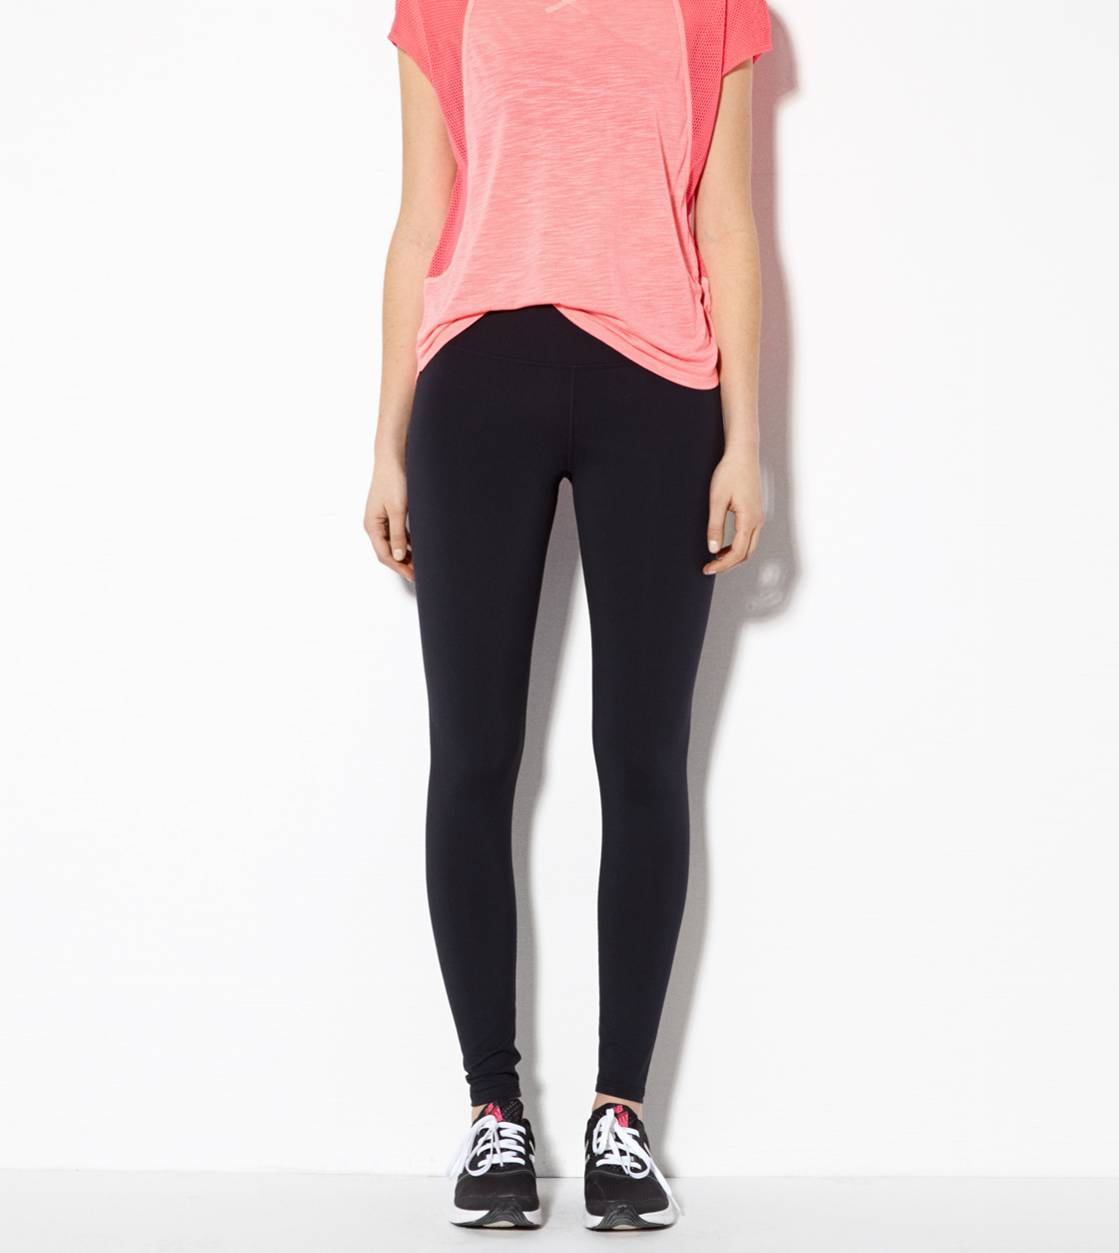 Black AEO Performance Legging